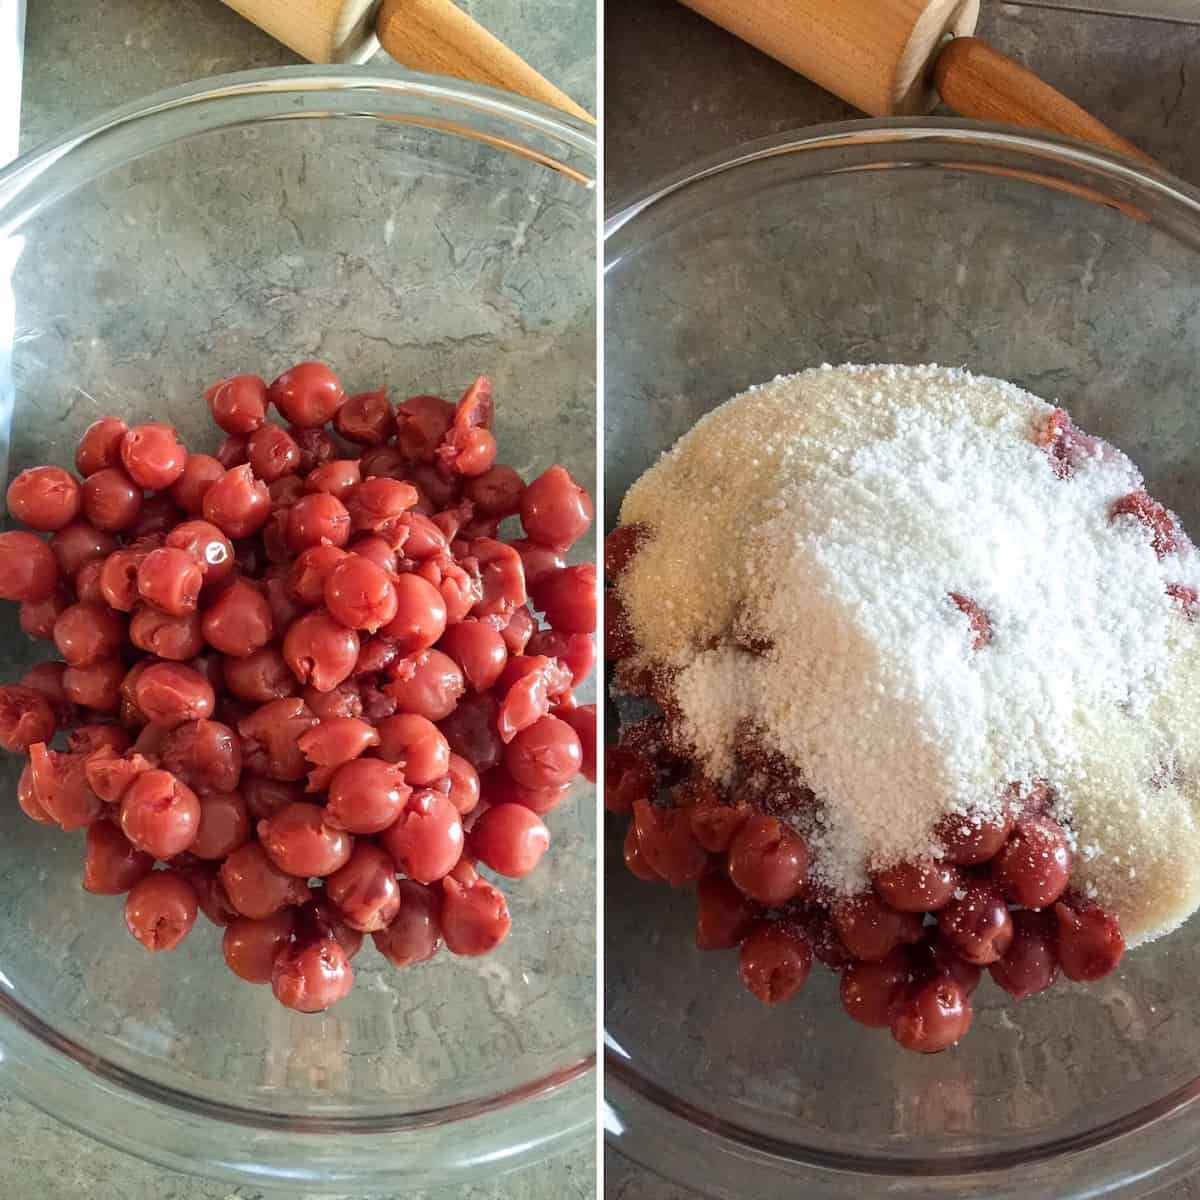 Preparing filling with sugar, tapioca and cherries, two photo collage.